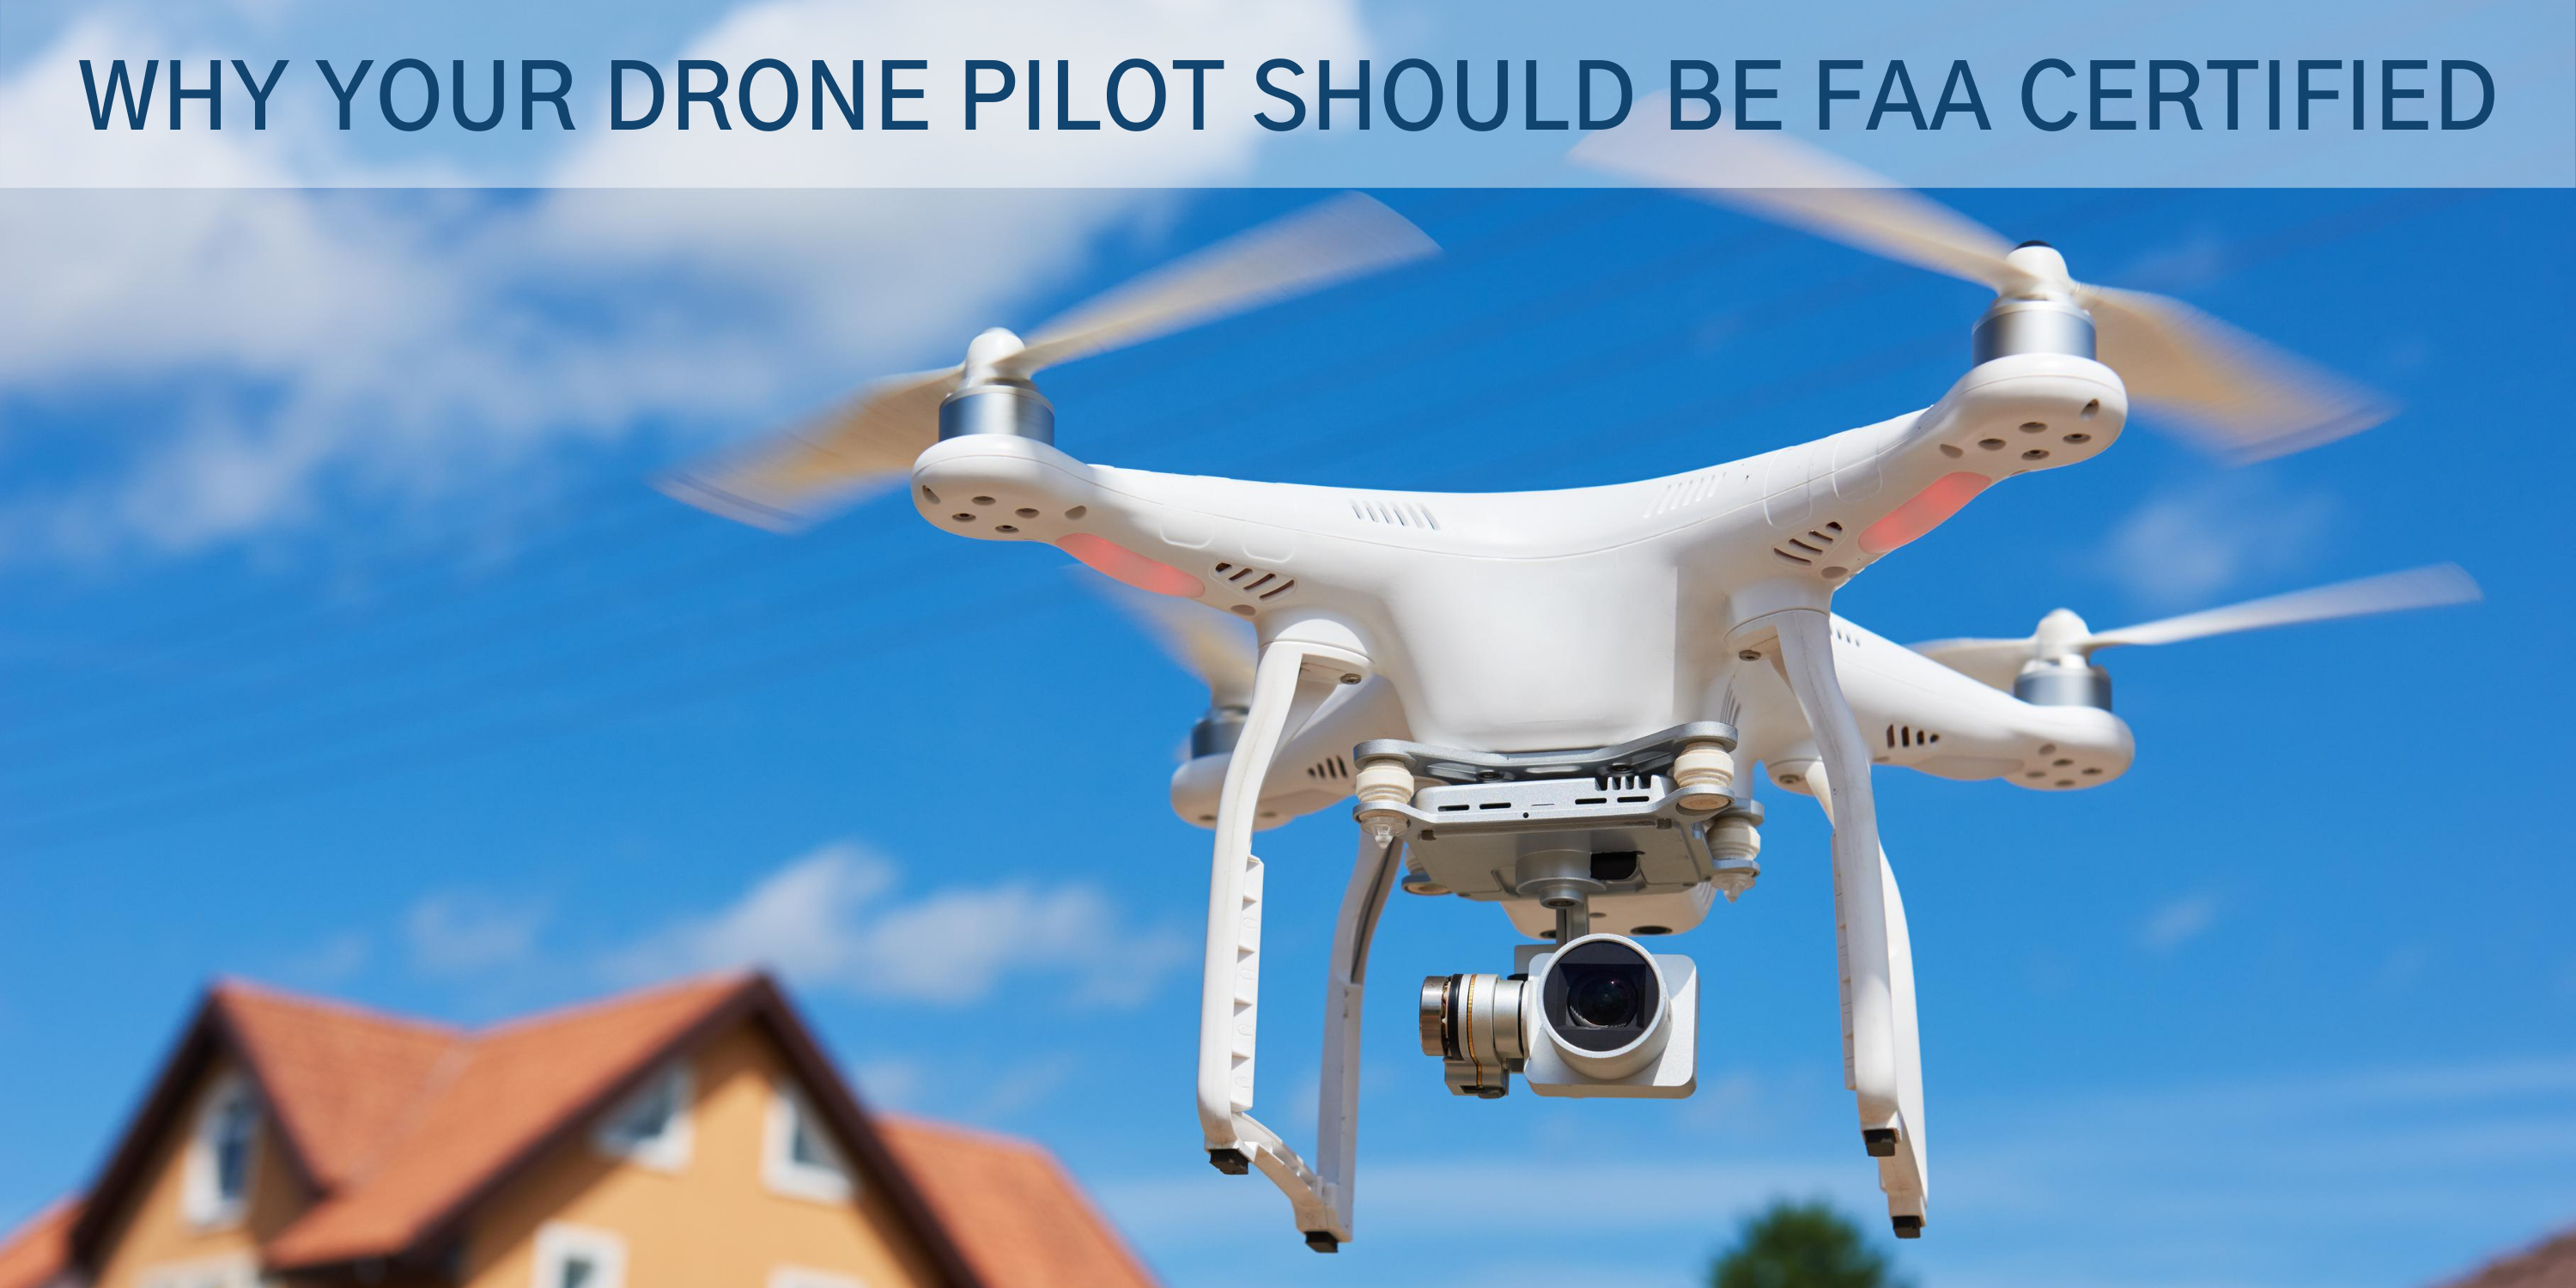 A white drone flying near a house for video and photography but make sure your drone pilot is FAA certified